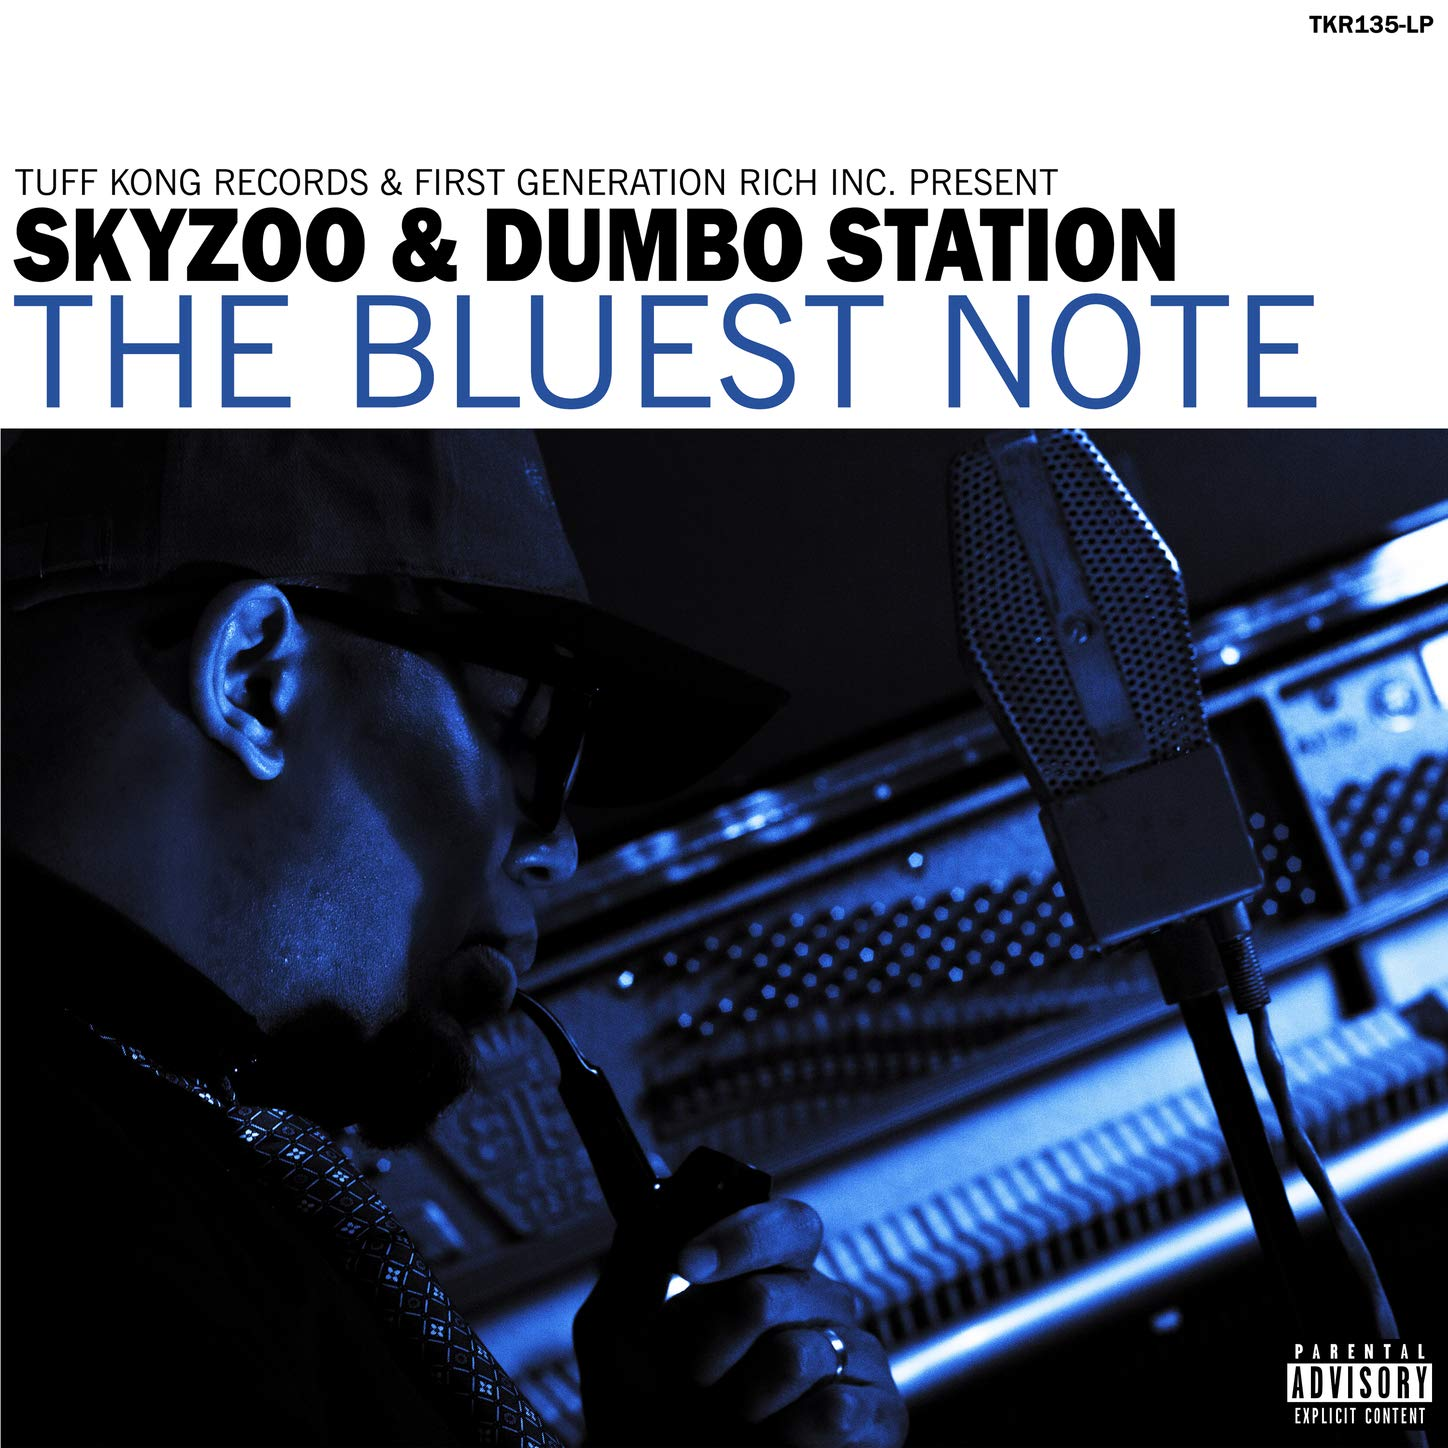 Skyzoo & Dumbo Station - The Bluest Note (2020) [FLAC] Download